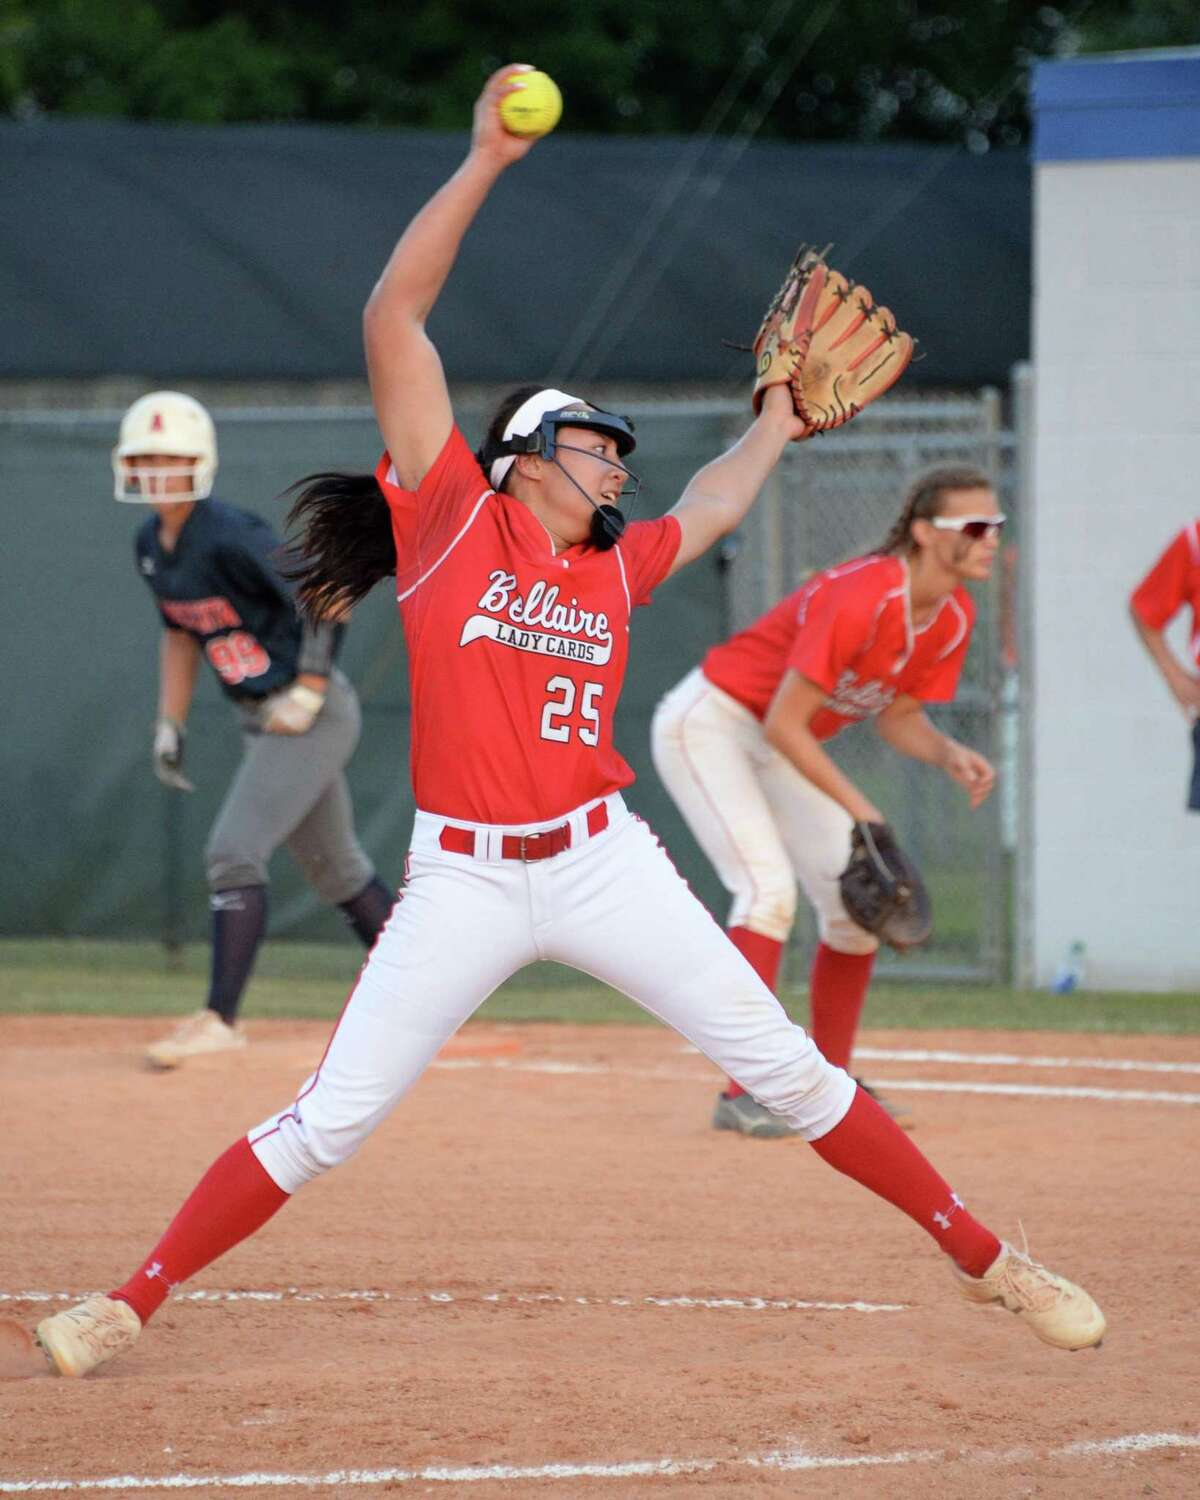 The plan to build the baseball and softball facilities are part of the $137 million rebuild of Bellaire High School that is funded in the 2012 HISD Bond Program. The district decided to maximize space on the 18-acre high school campus by relocating the baseball and softball practice fields to a site about two miles away.